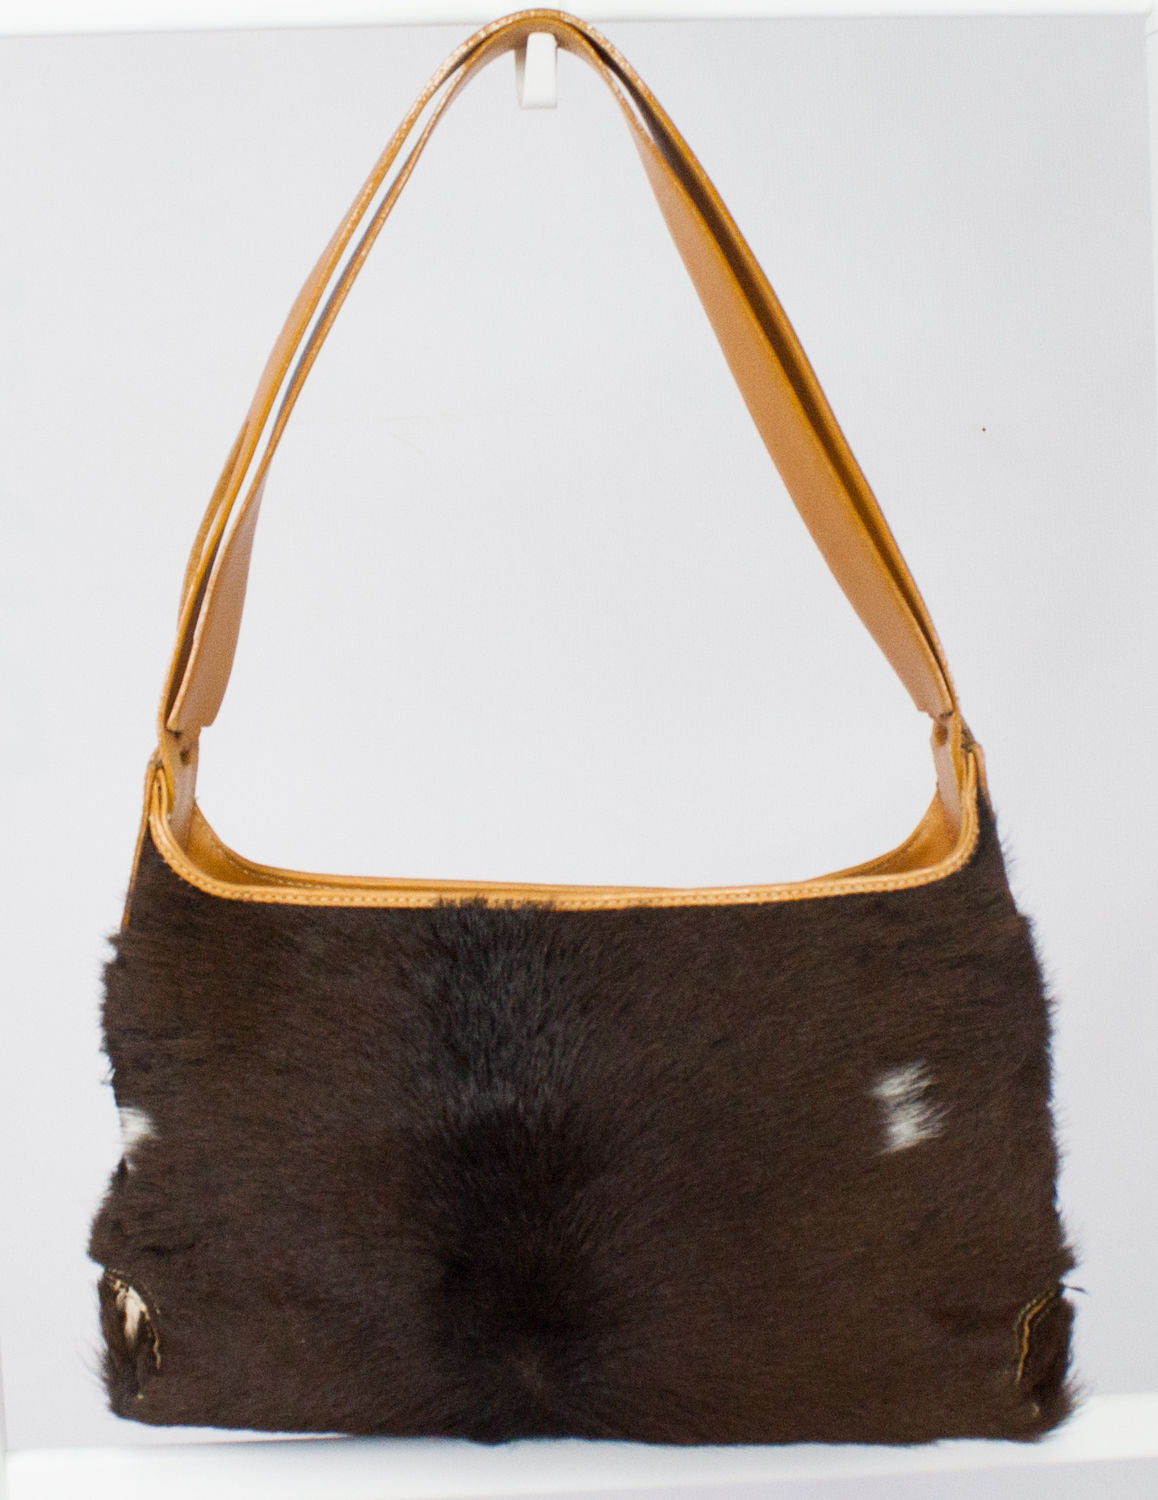 TOD'S Brown Fur & Leather Shoulder Bag - secondfirst